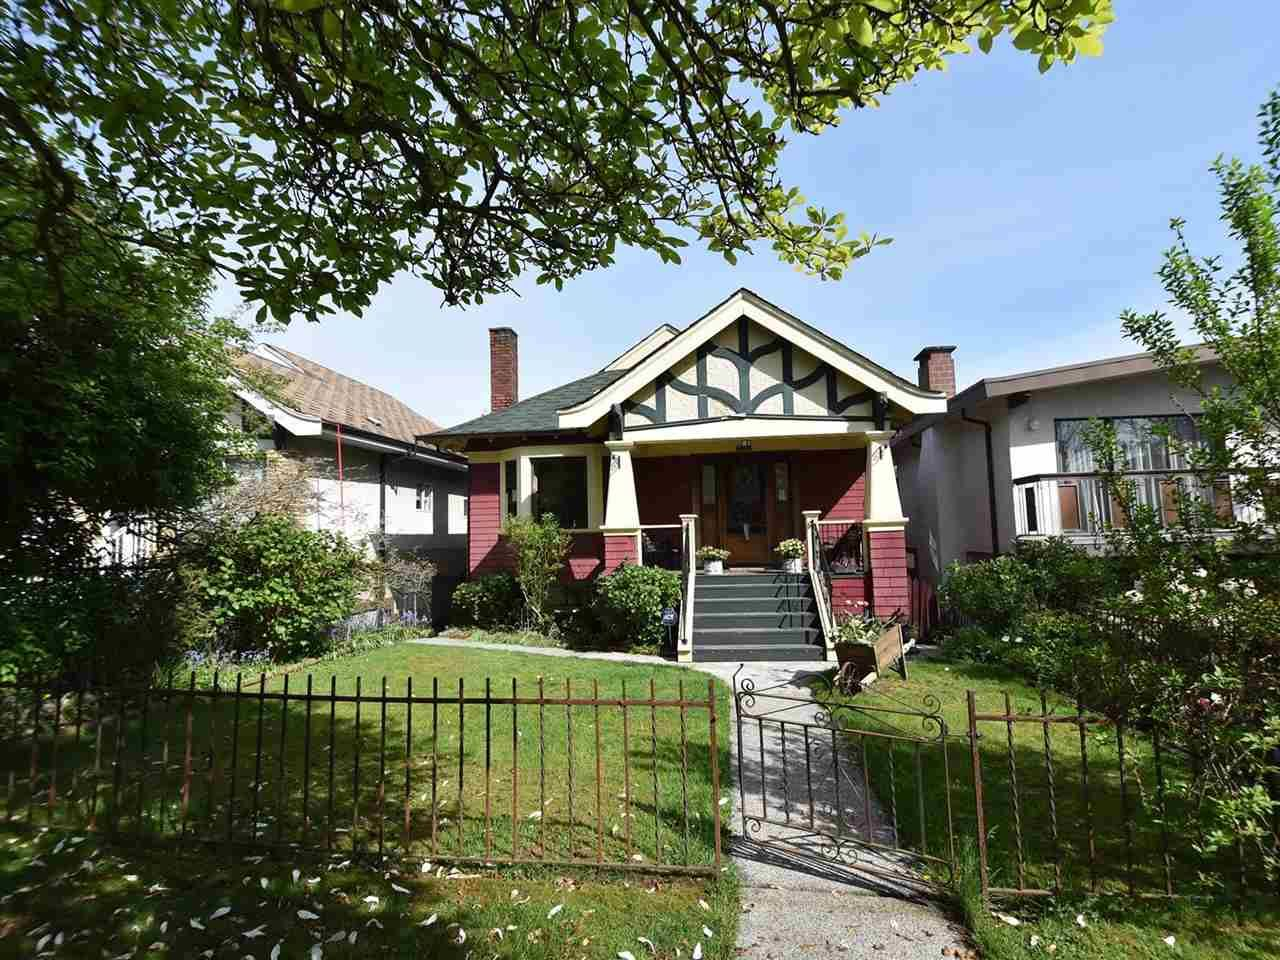 Main Photo: 2733 FRANKLIN Street in Vancouver: Hastings East House for sale (Vancouver East)  : MLS®# R2058880